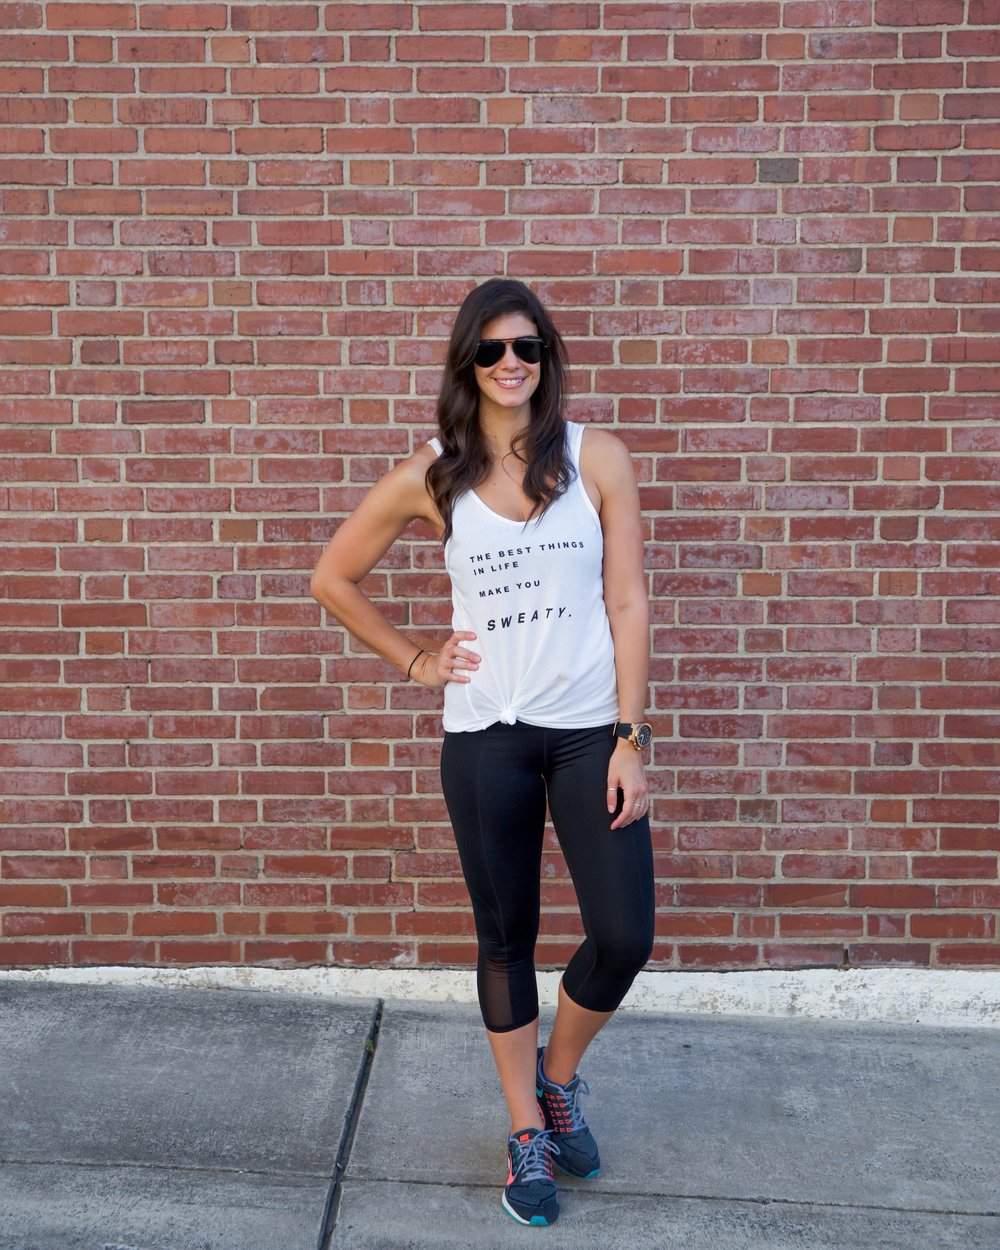 The-Best-Things-In-life-Make-You-Sweaty-Good-Hyouman-Tank-laurenschwaiger-style-blog.jpg